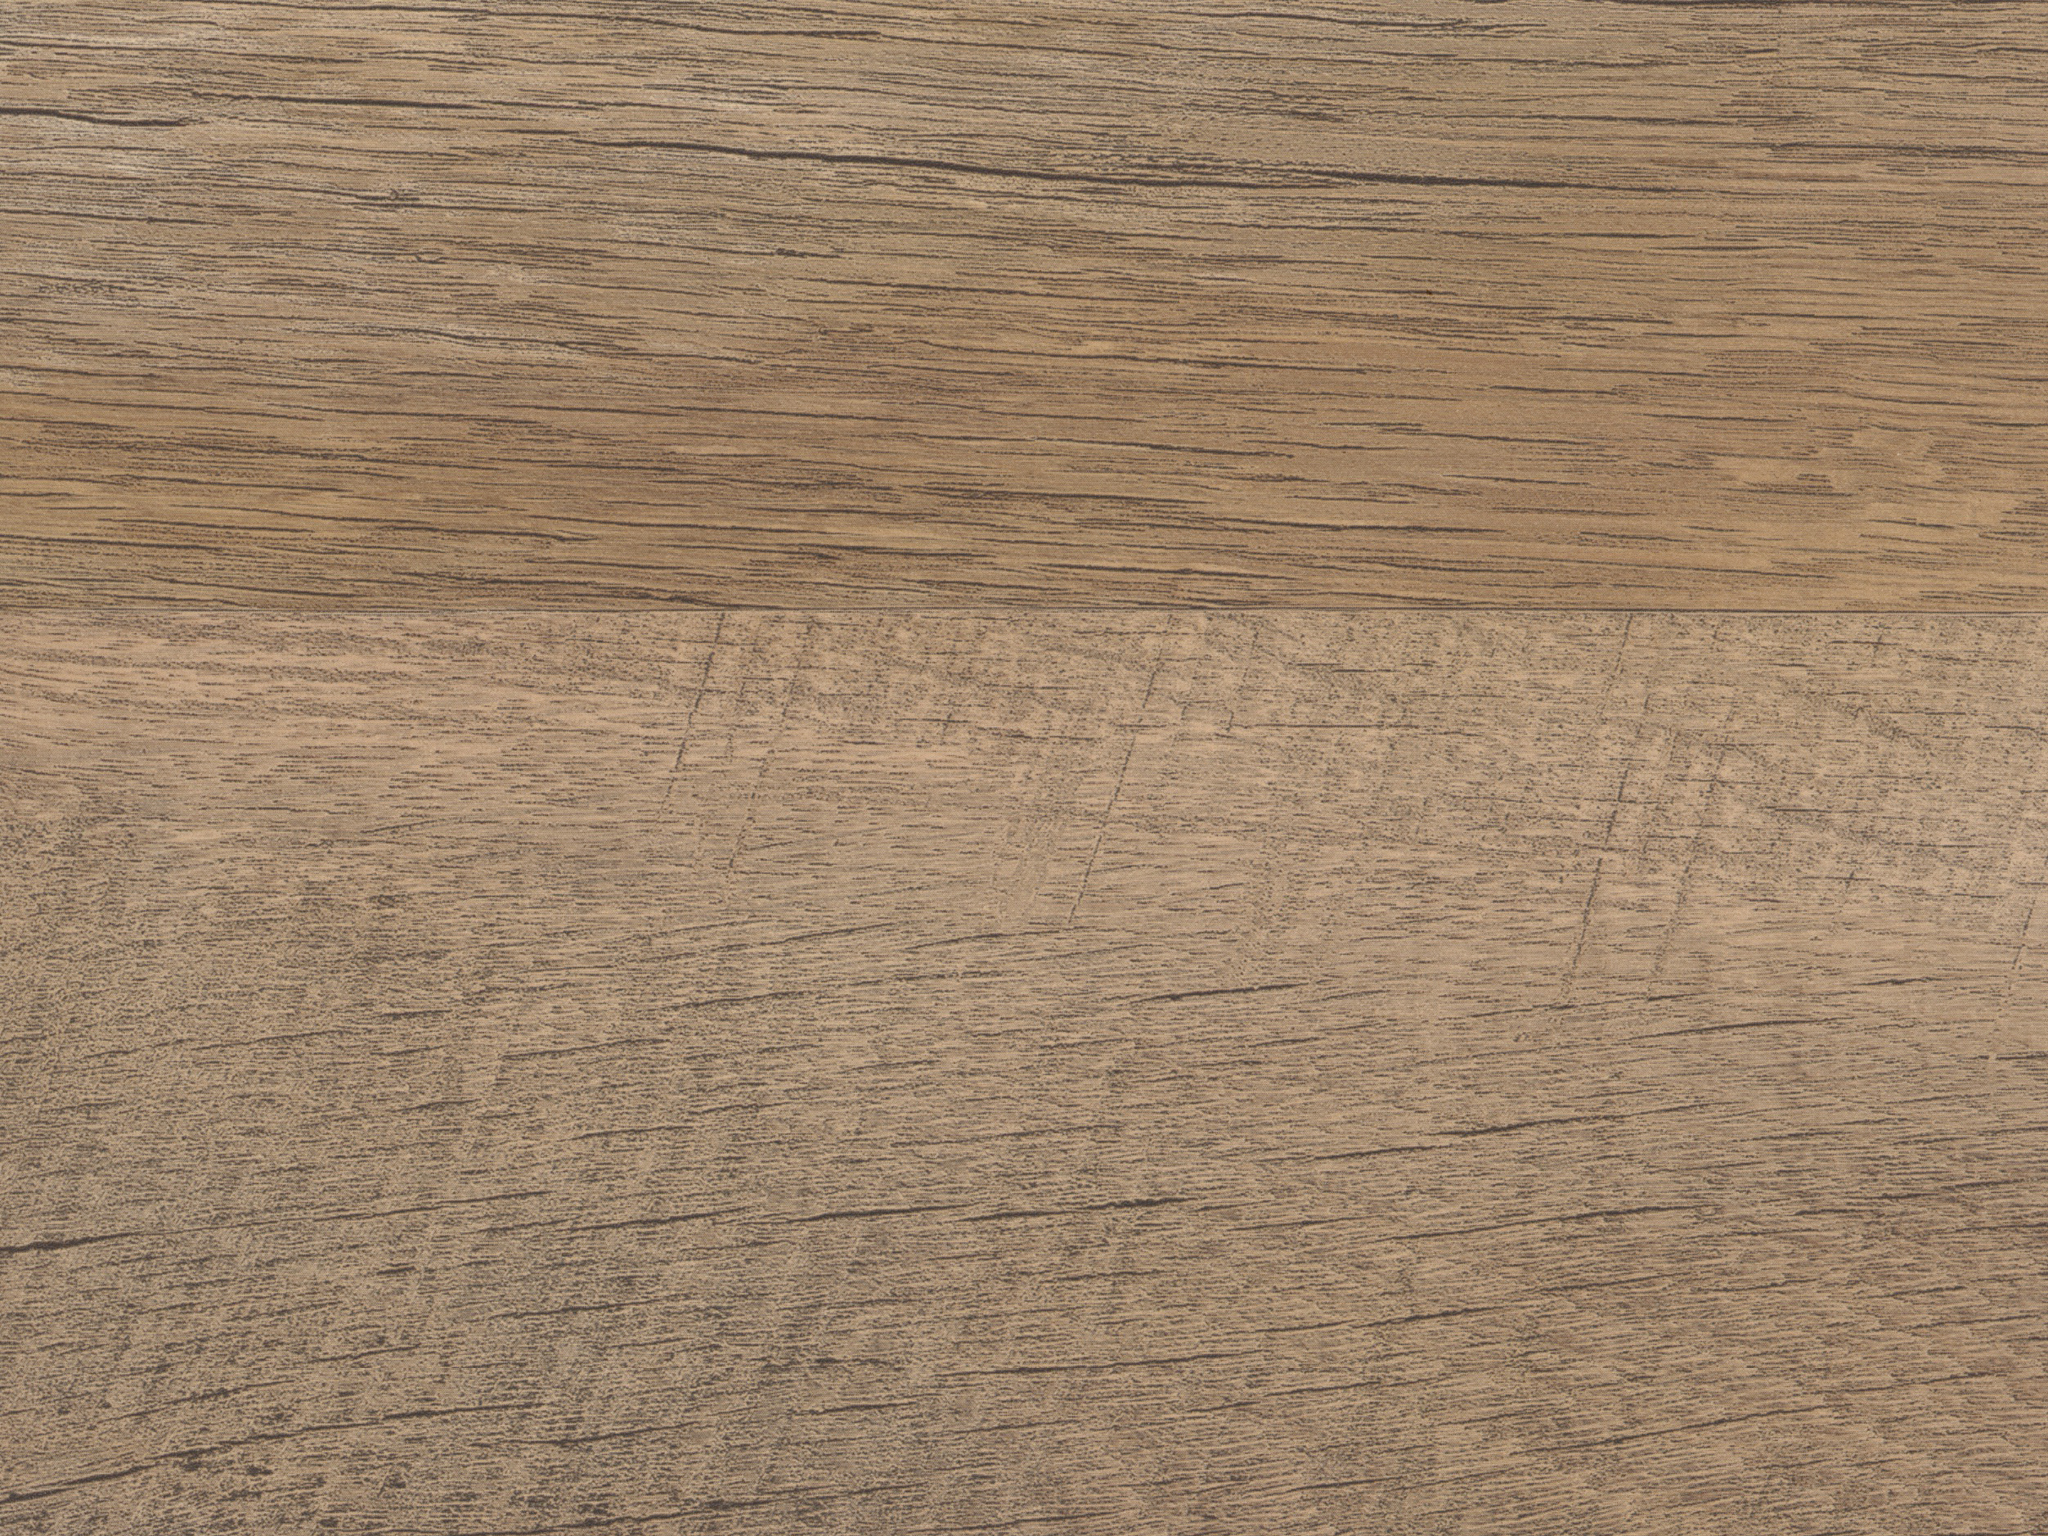 MAY_Decor_Accent-HoustonPlank-1